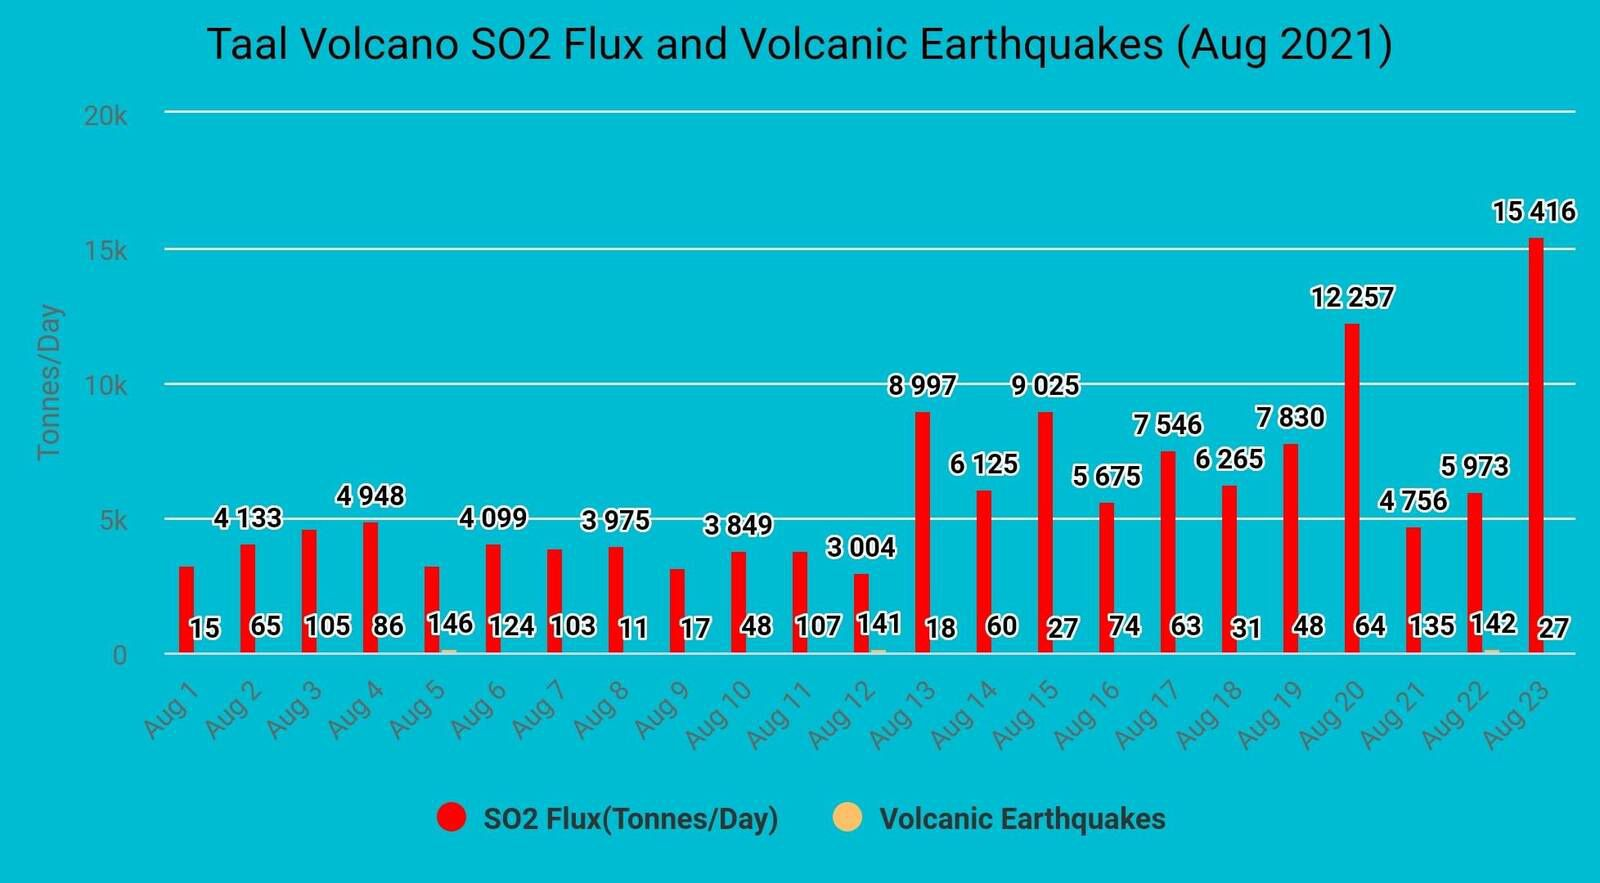 Taal - sulfur dioxide flux and nbr. of volcanic earthquakes from August 1 to 23, 2021 - Doc. Phivolcs